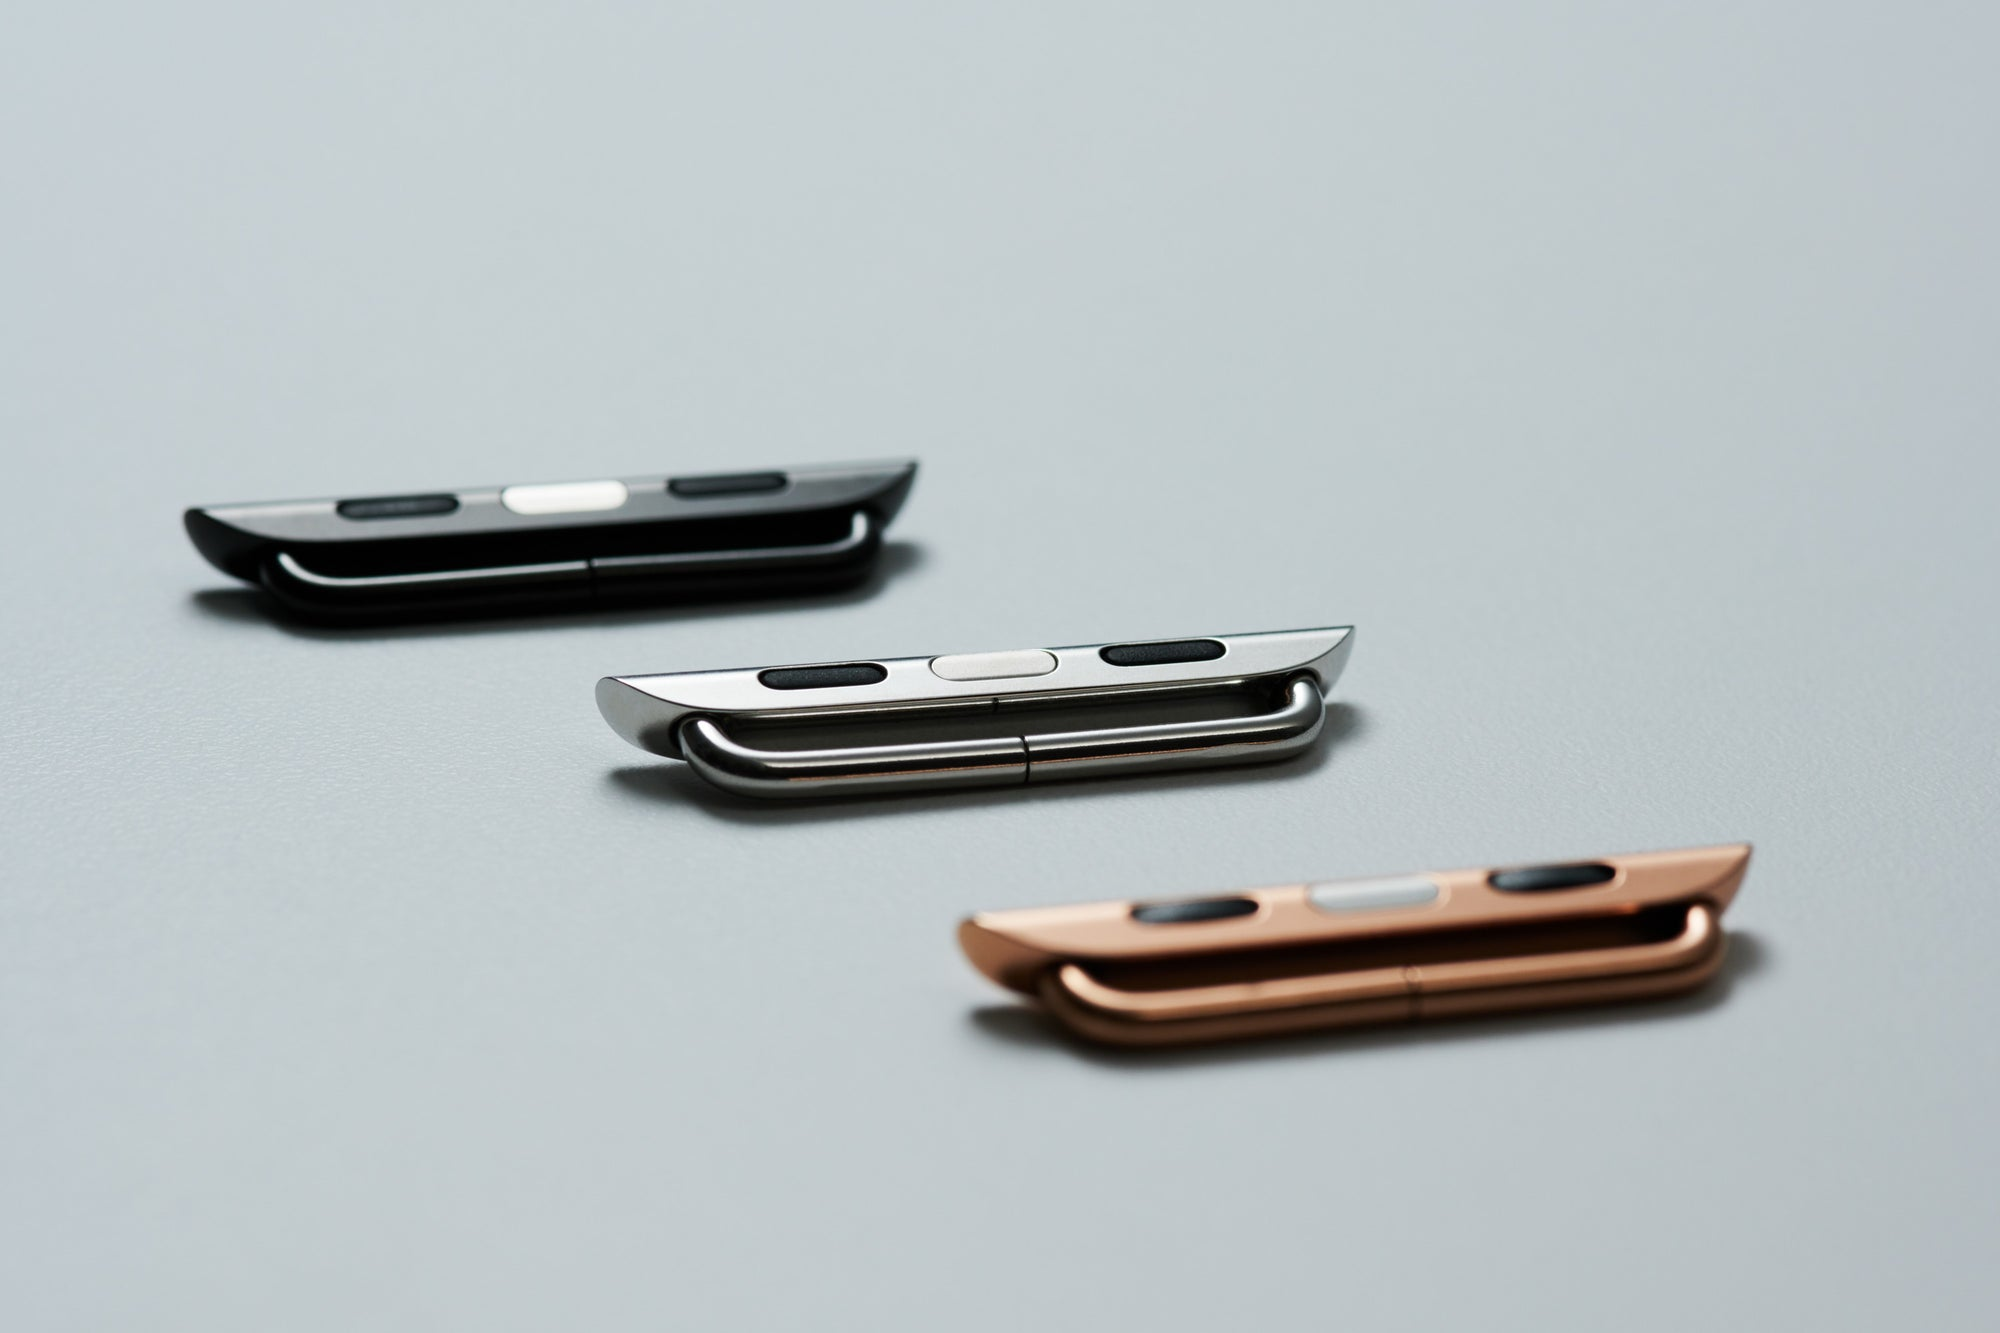 Pin and Buckle Apple Watch Bands - Polished Stainless Steel Adapters in Silver Gold and Black